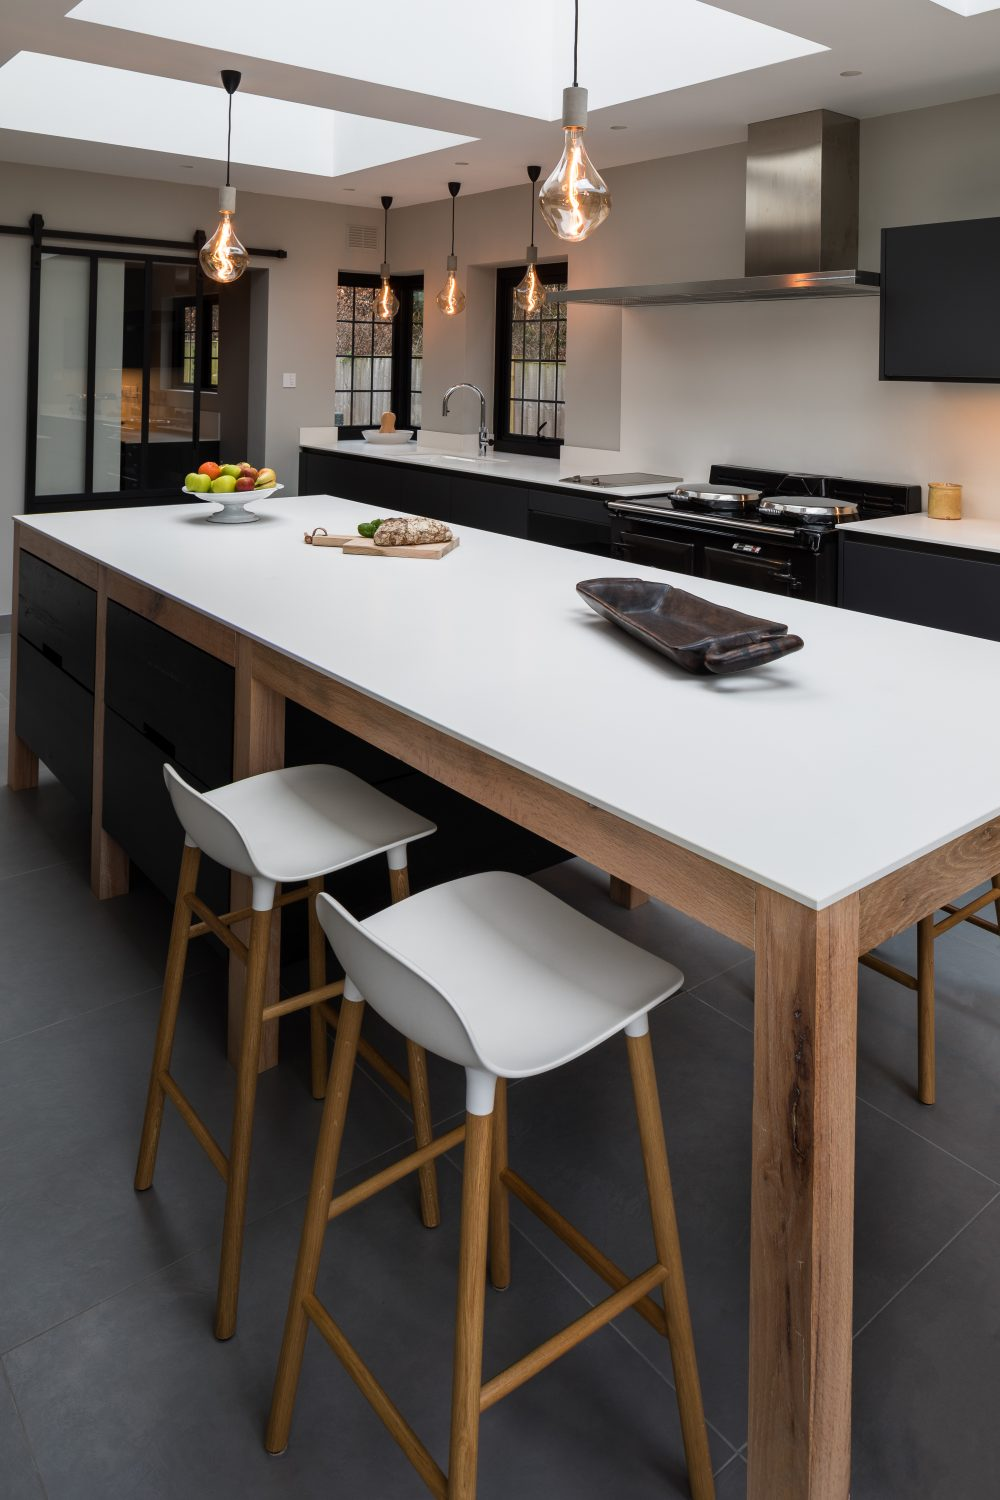 Adaptations The island is bespoke in American reclaimed oak with ebony-stained drawer fronts, the cabinets are from the handleless extreme matt range in Carbon. Kitchens from £25,000 01932 584940 adaptations.uk.com